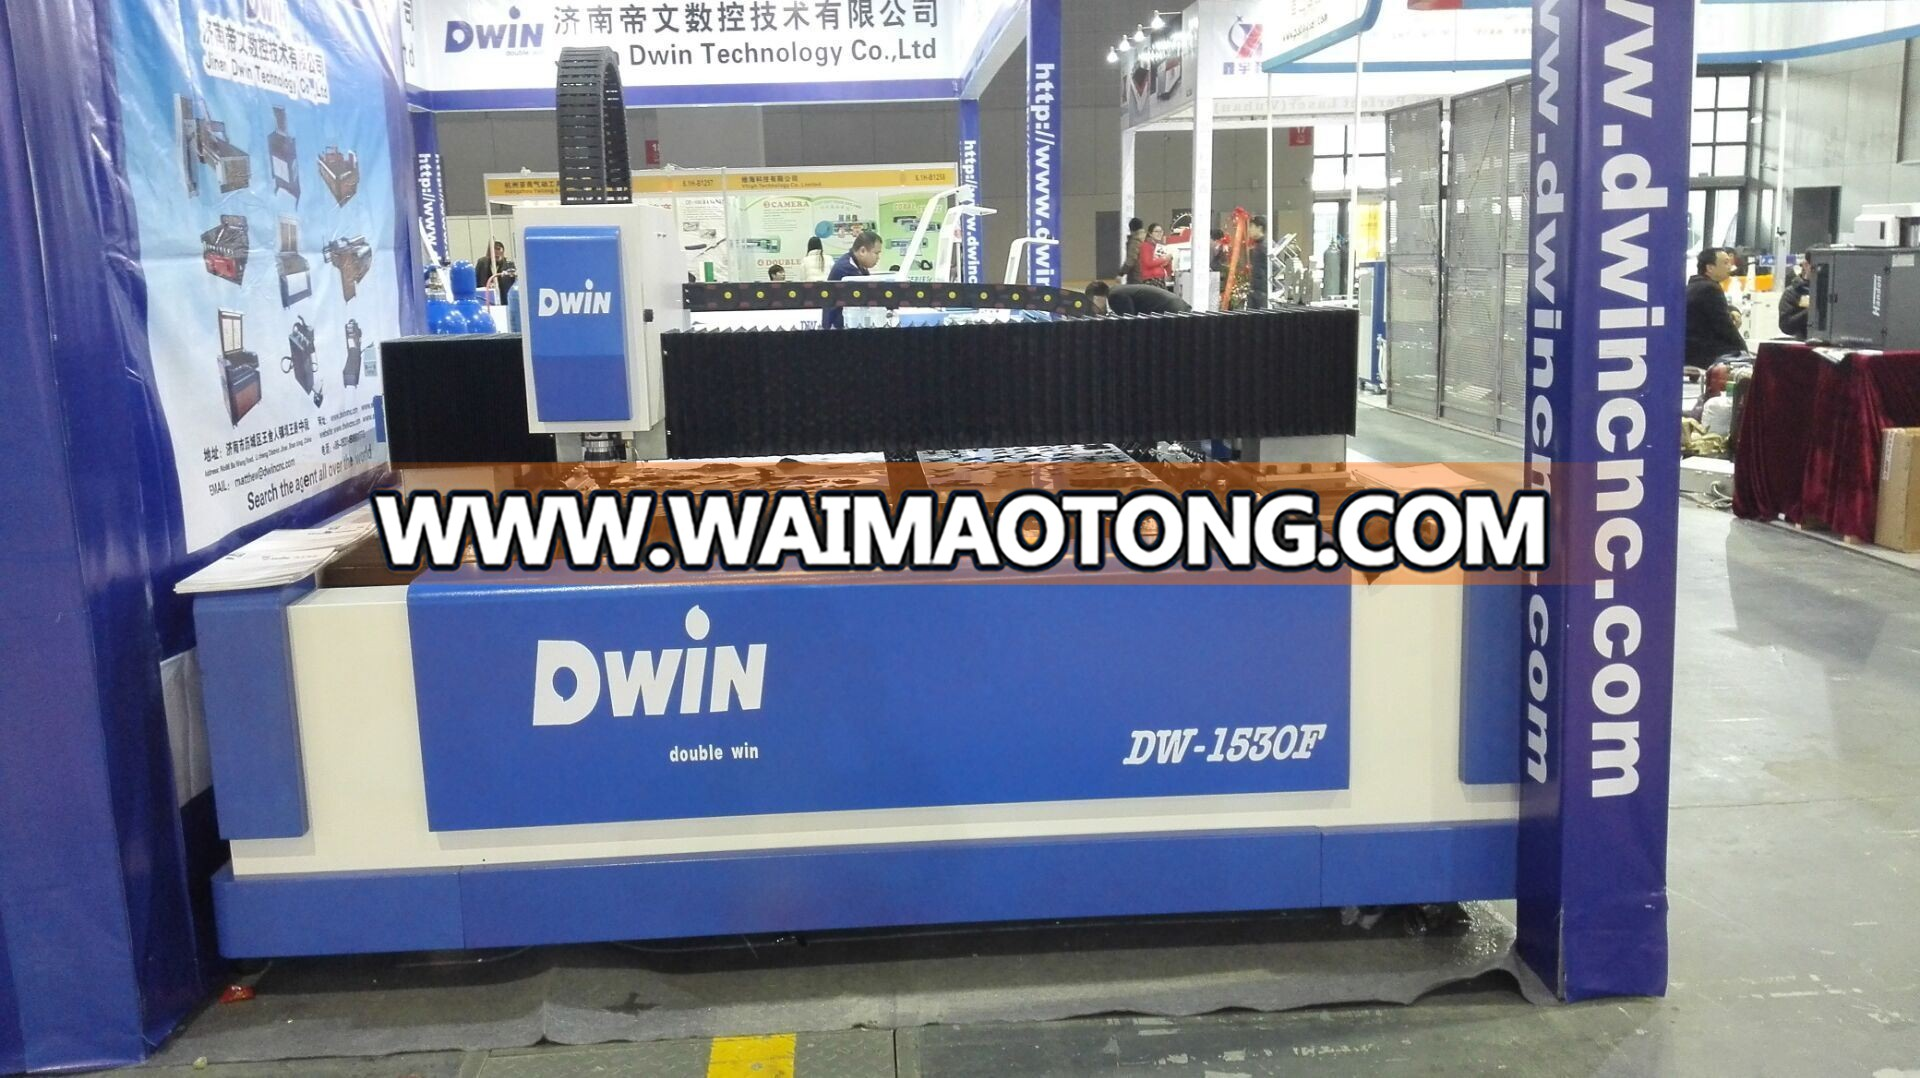 750W Raycus Fiber Laser Cutting Machine (DW1530)